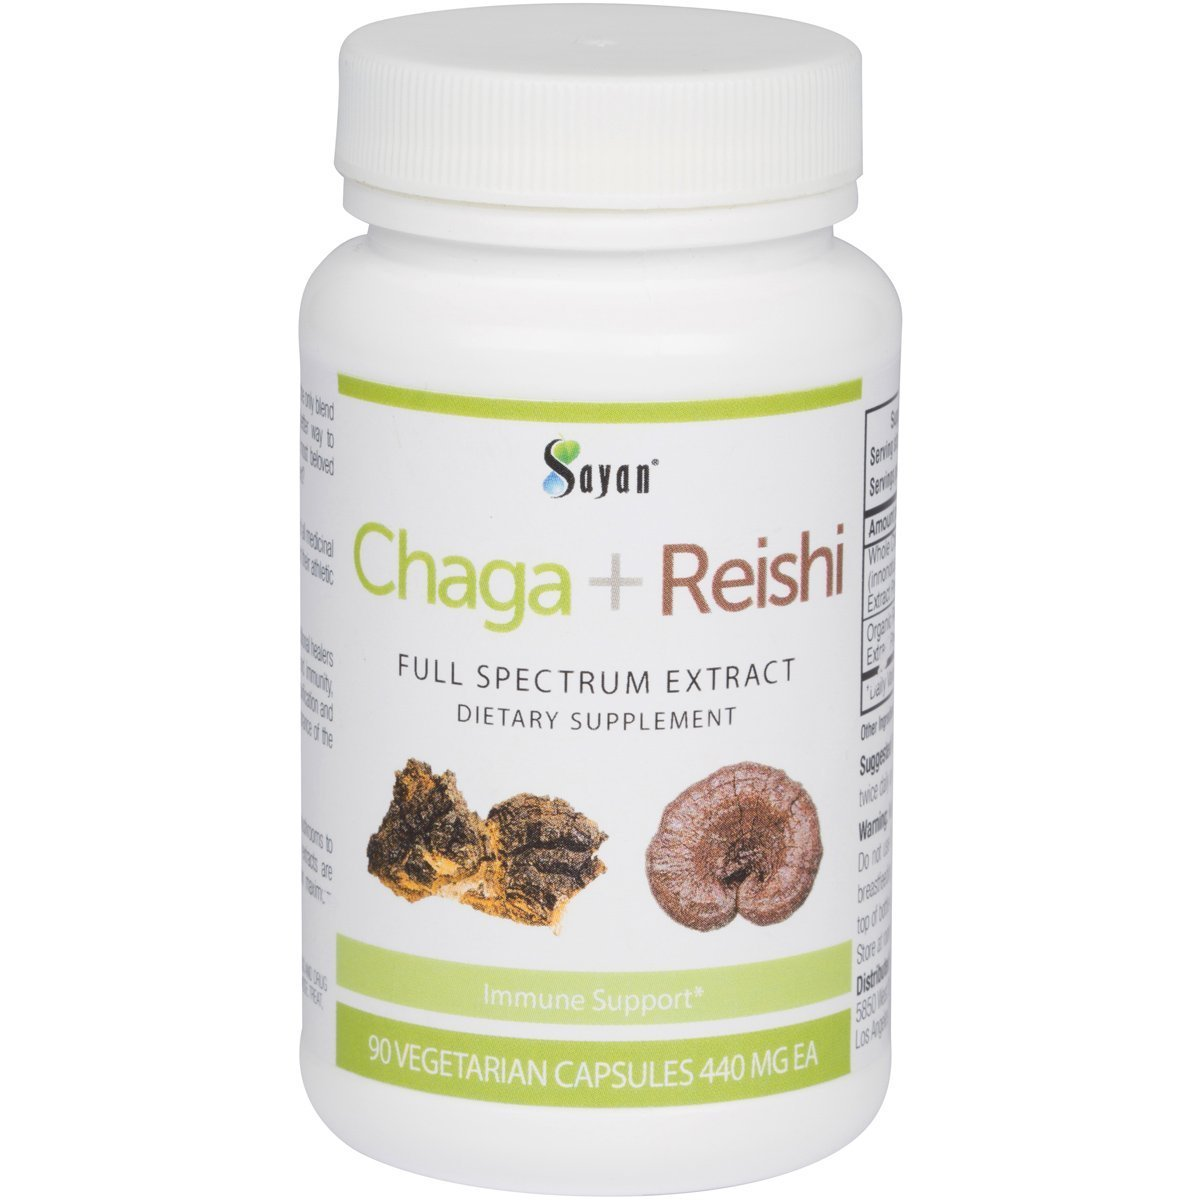 Sayan Siberian Chaga and Organic Reishi Extract Supplement 440mg - Wild-Harvested, Unique Mushroom Blend for Immune System Support + Natural Energy Boost, Non-GMO, Gluten Free, 90 Vegetarian Capsules